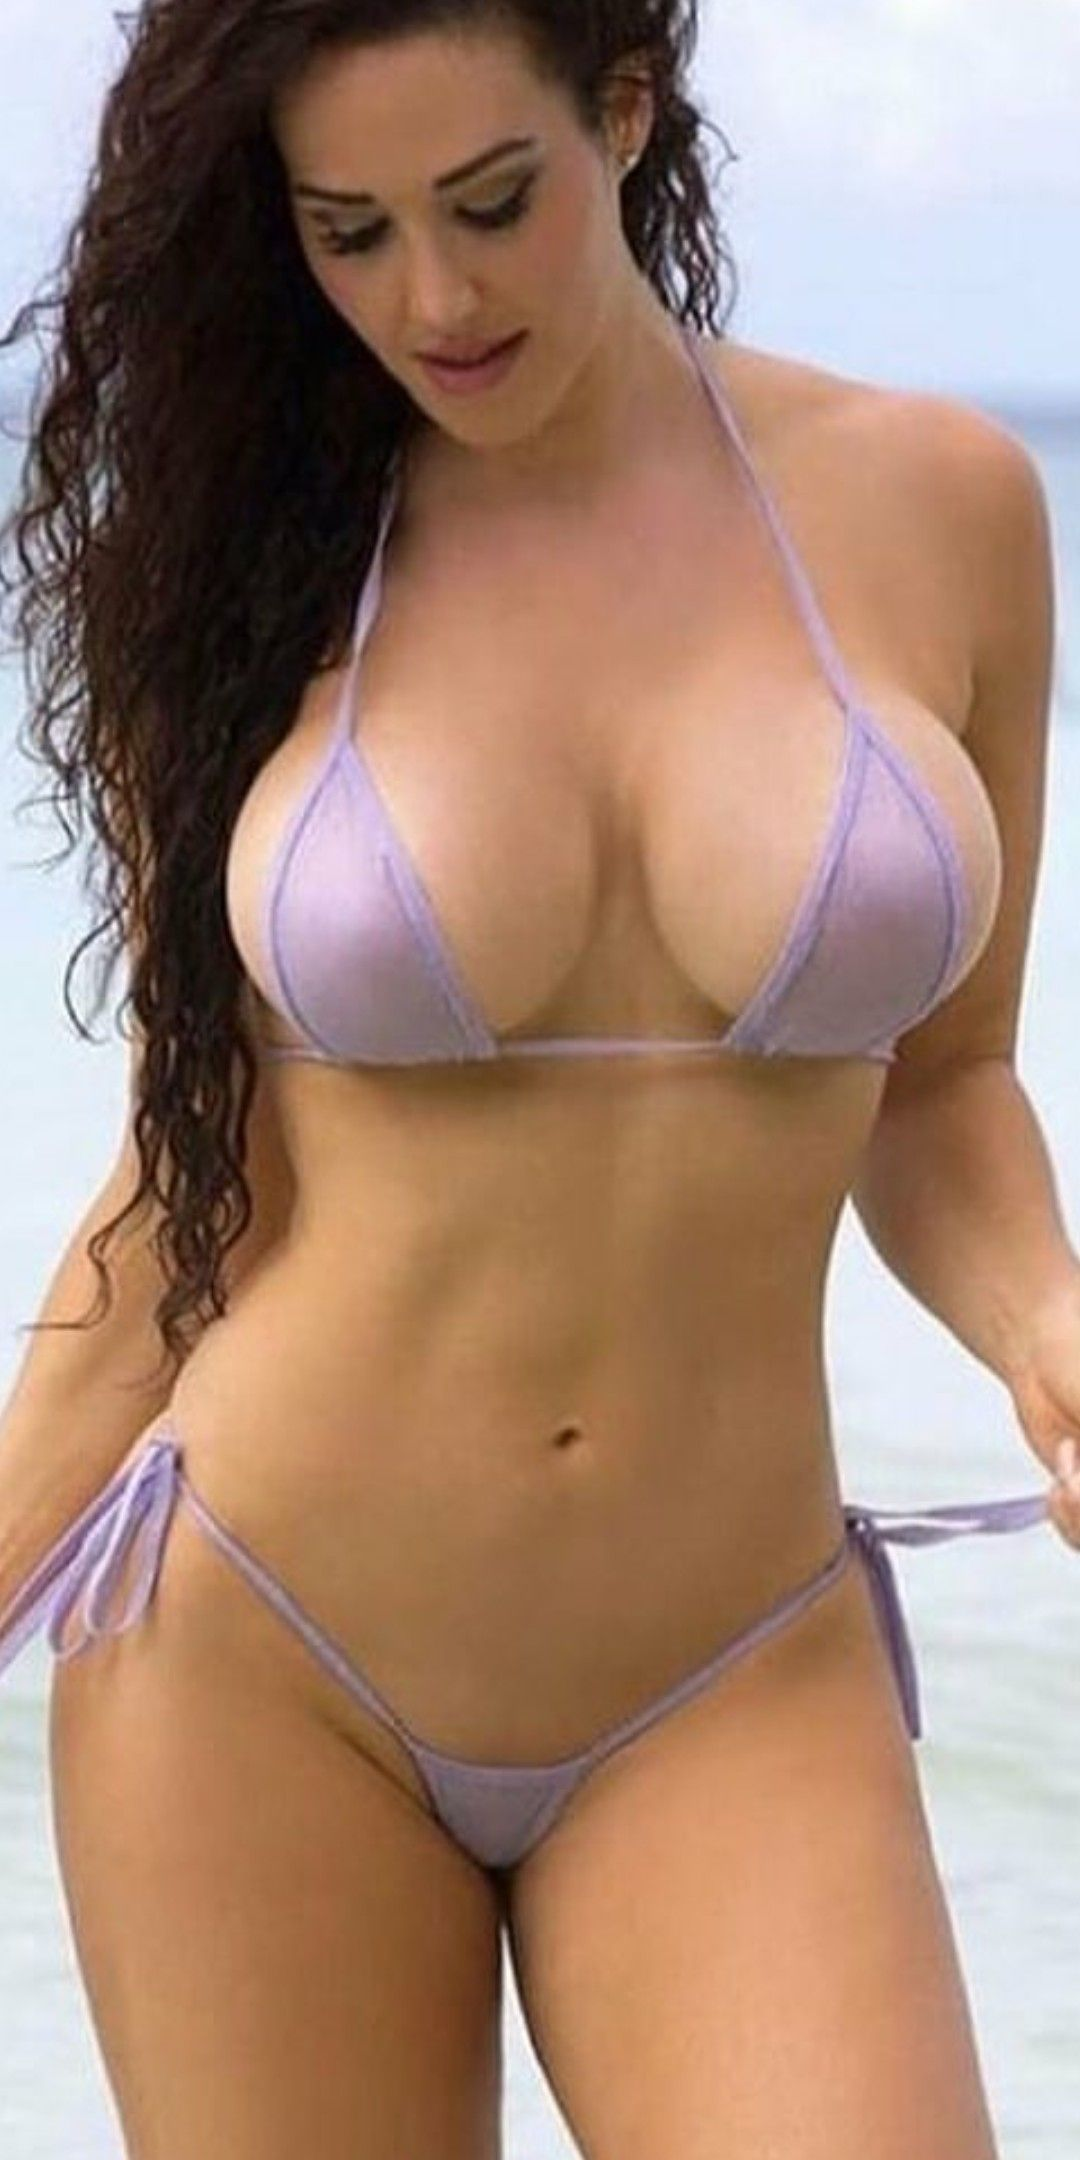 Gorgeous busty wife in bikini